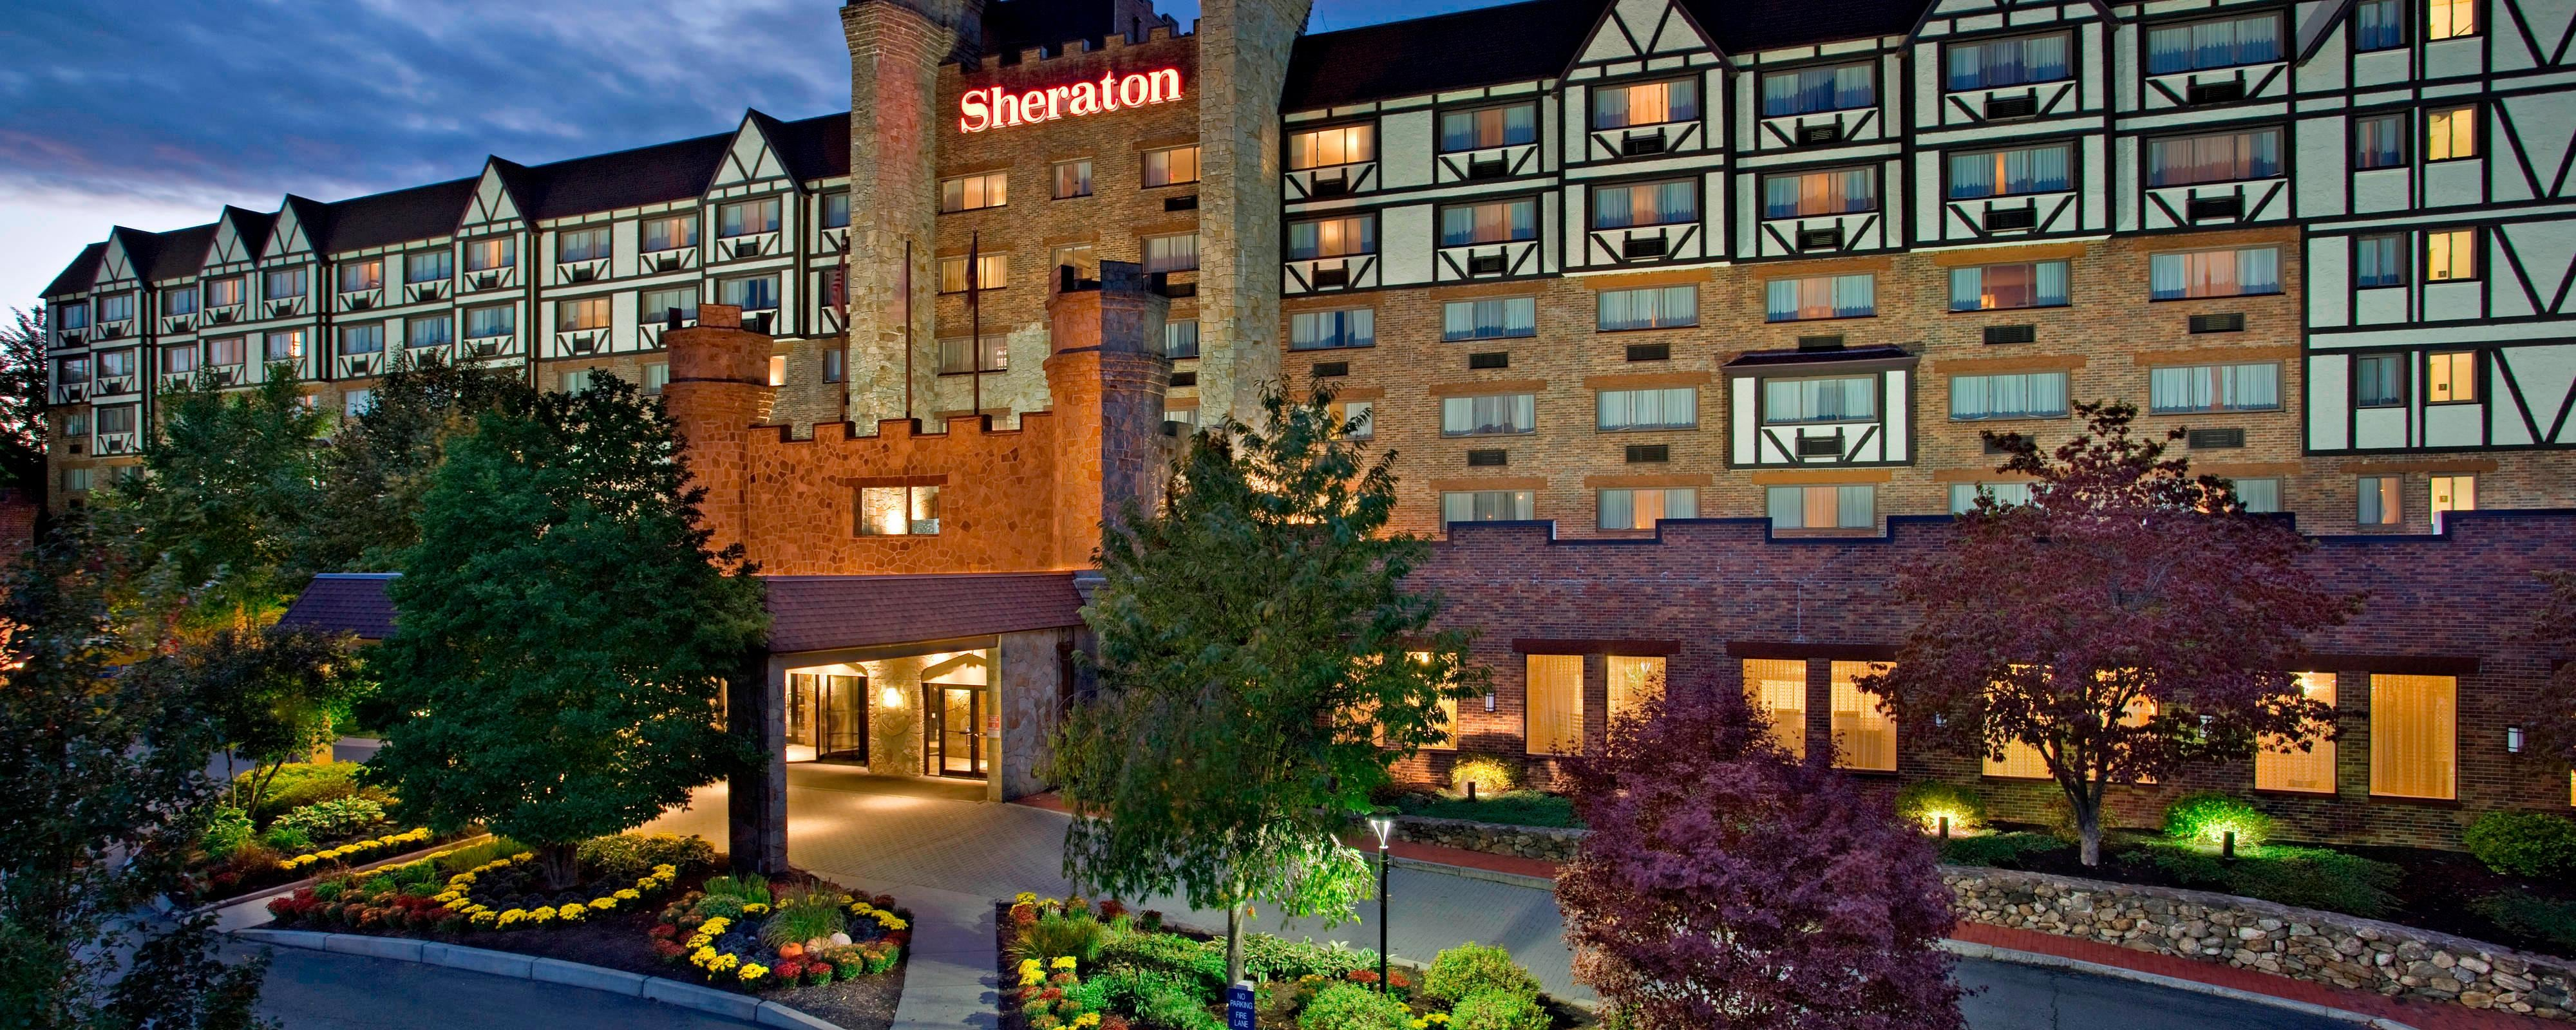 Map and directions to Sheraton Framingham Hotel & Conference Center ...